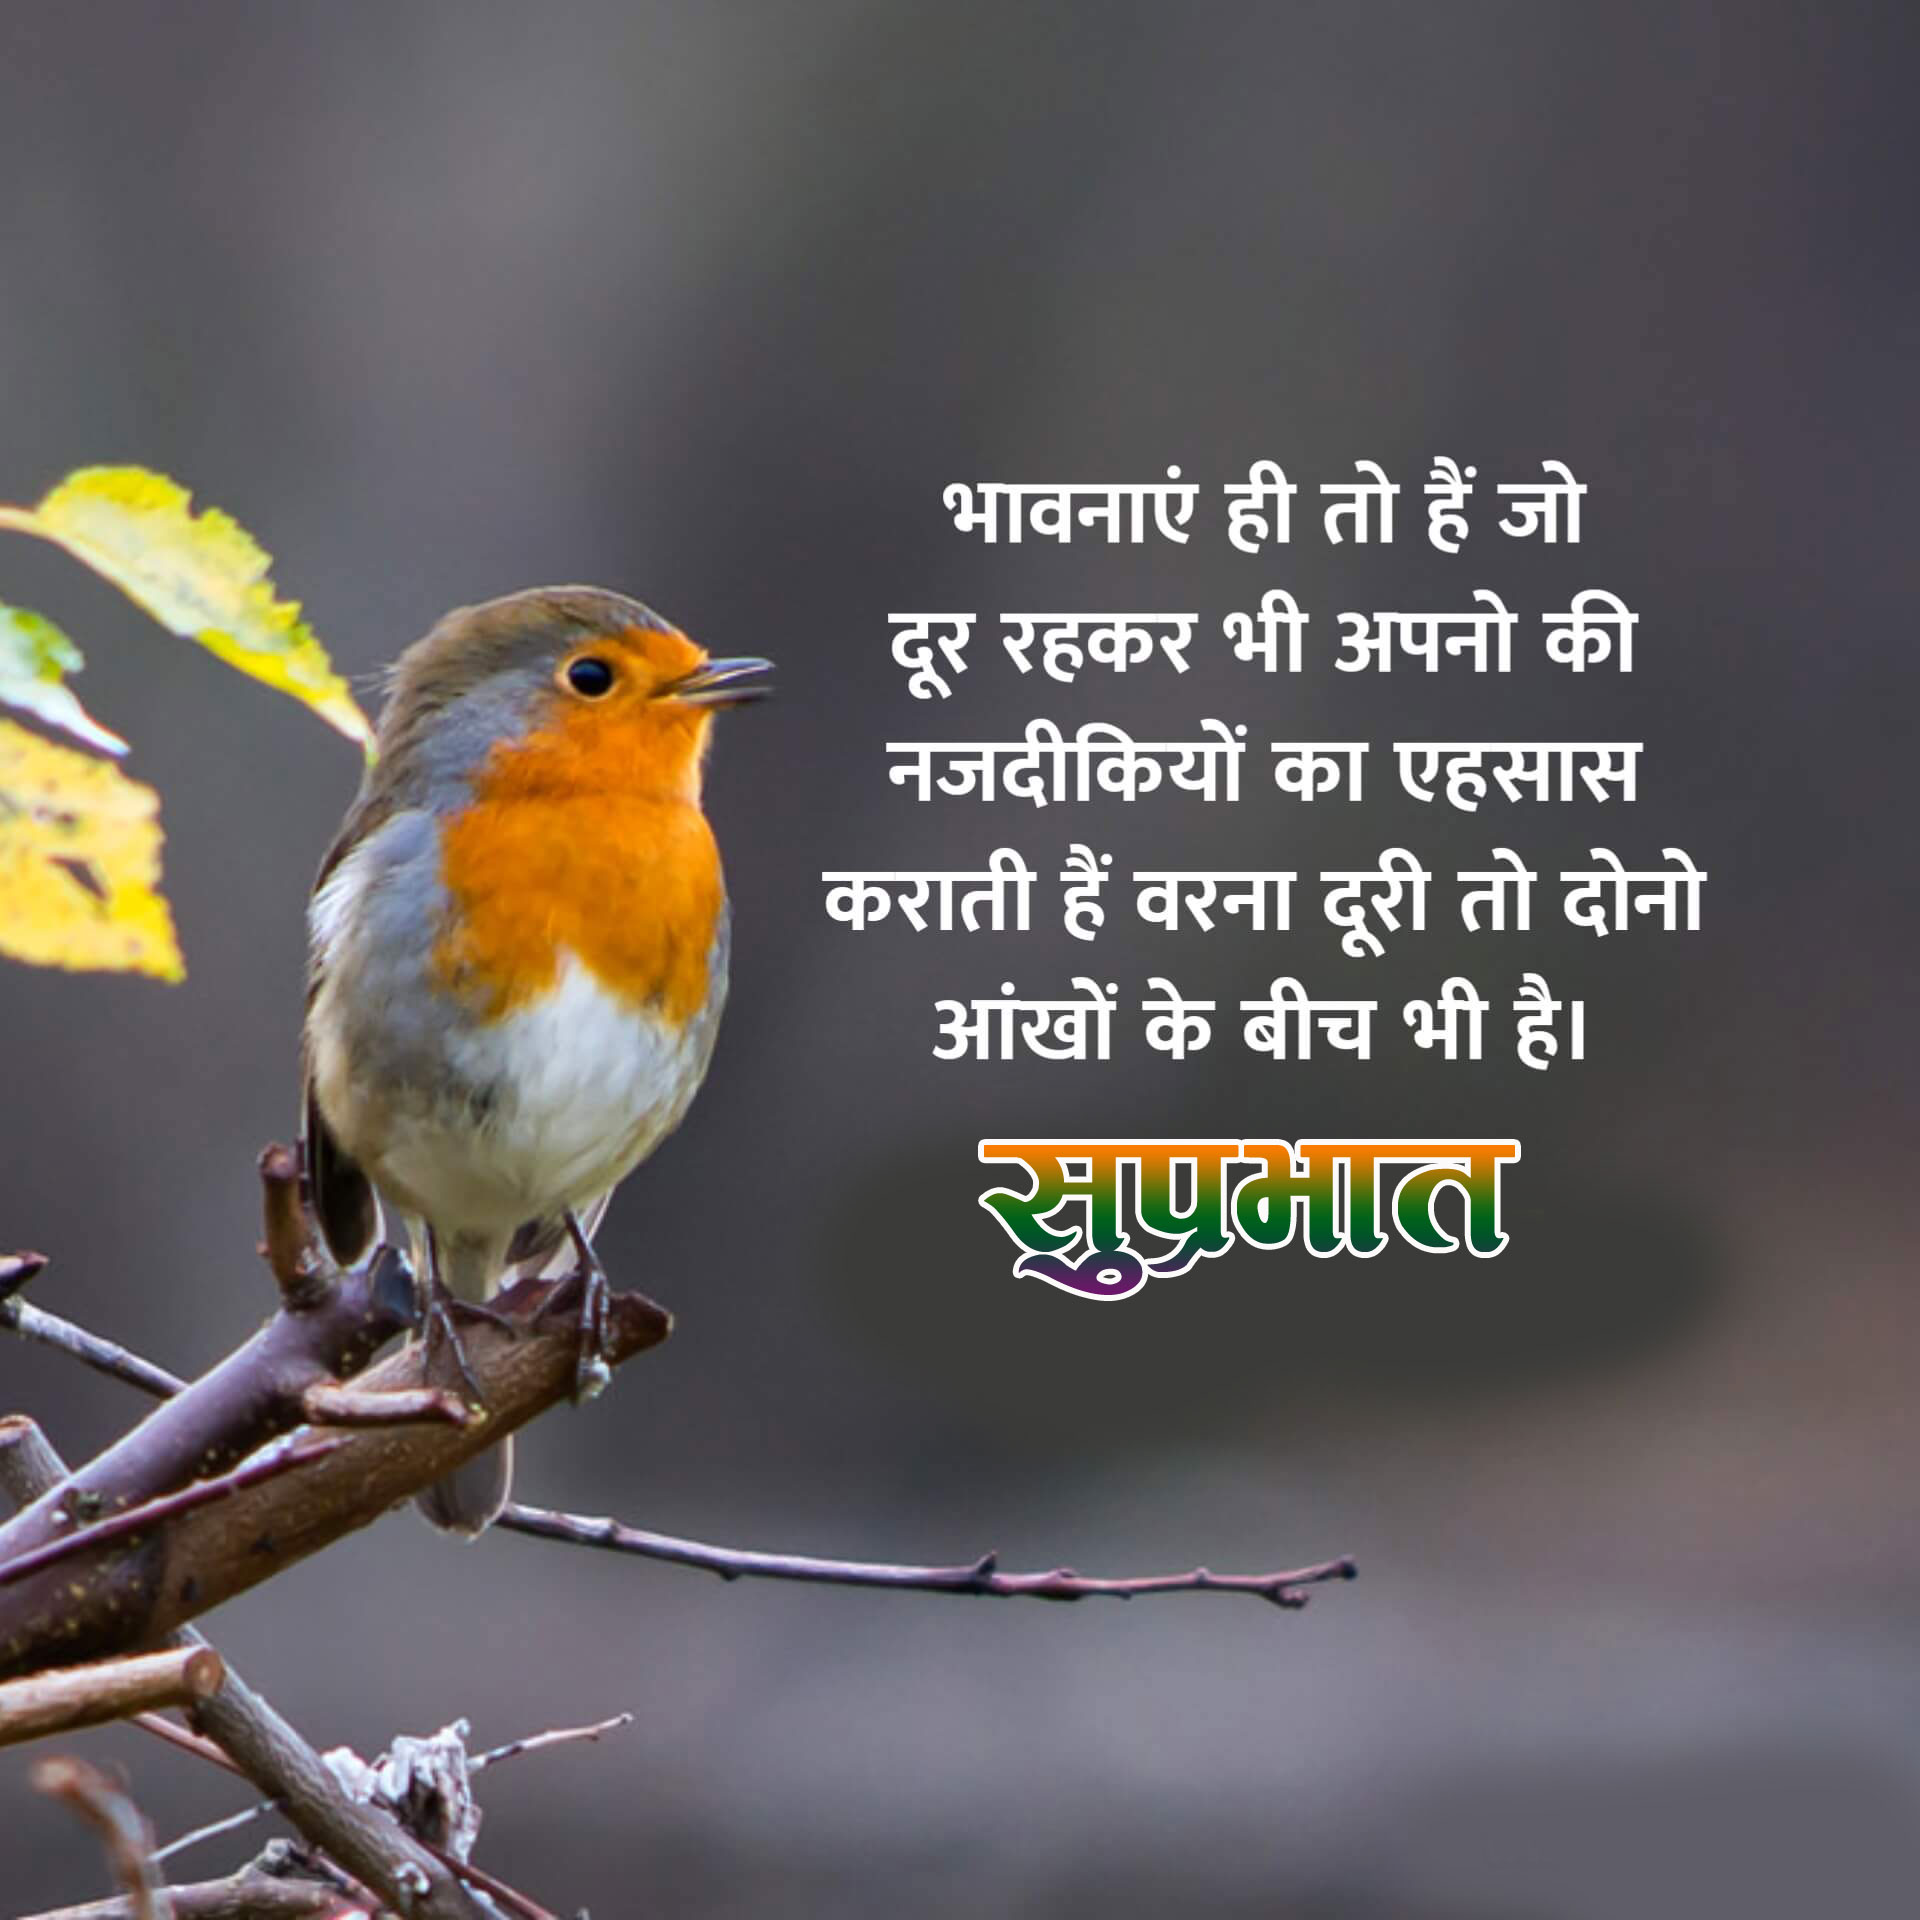 New Beautiful Suprabhat Images for facebook